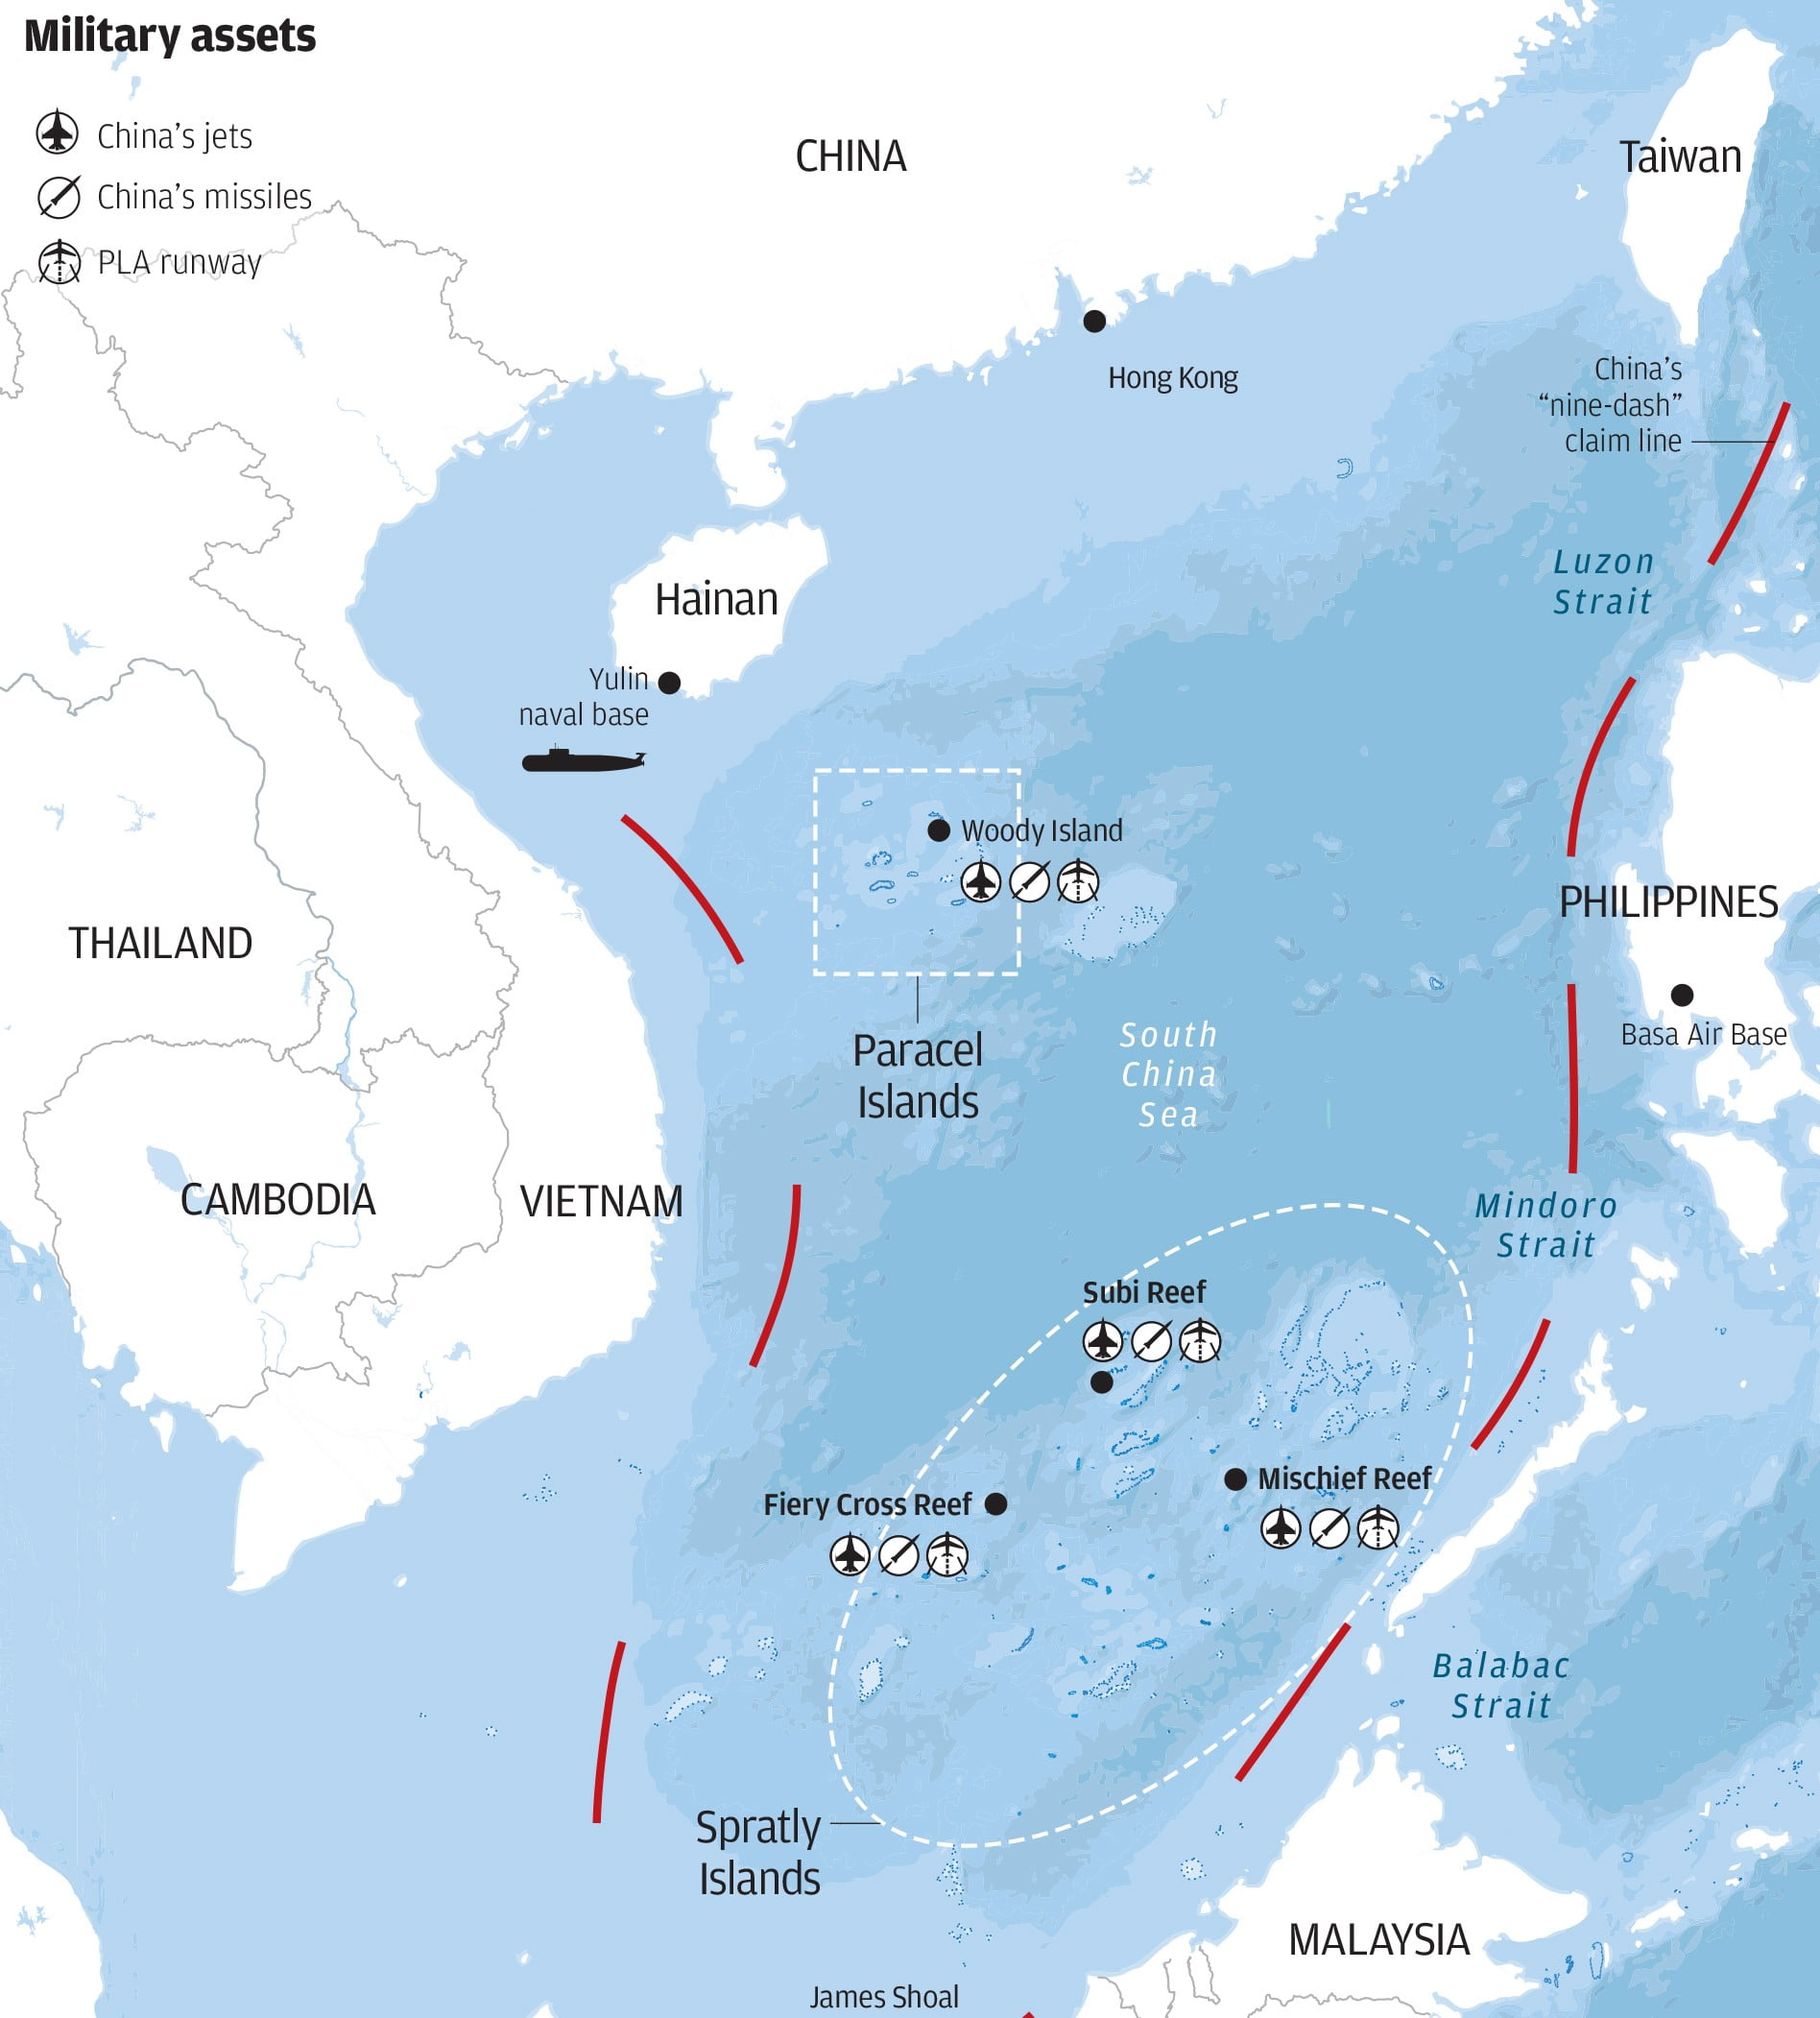 Military bases in the South China Sea. Click to enlarge